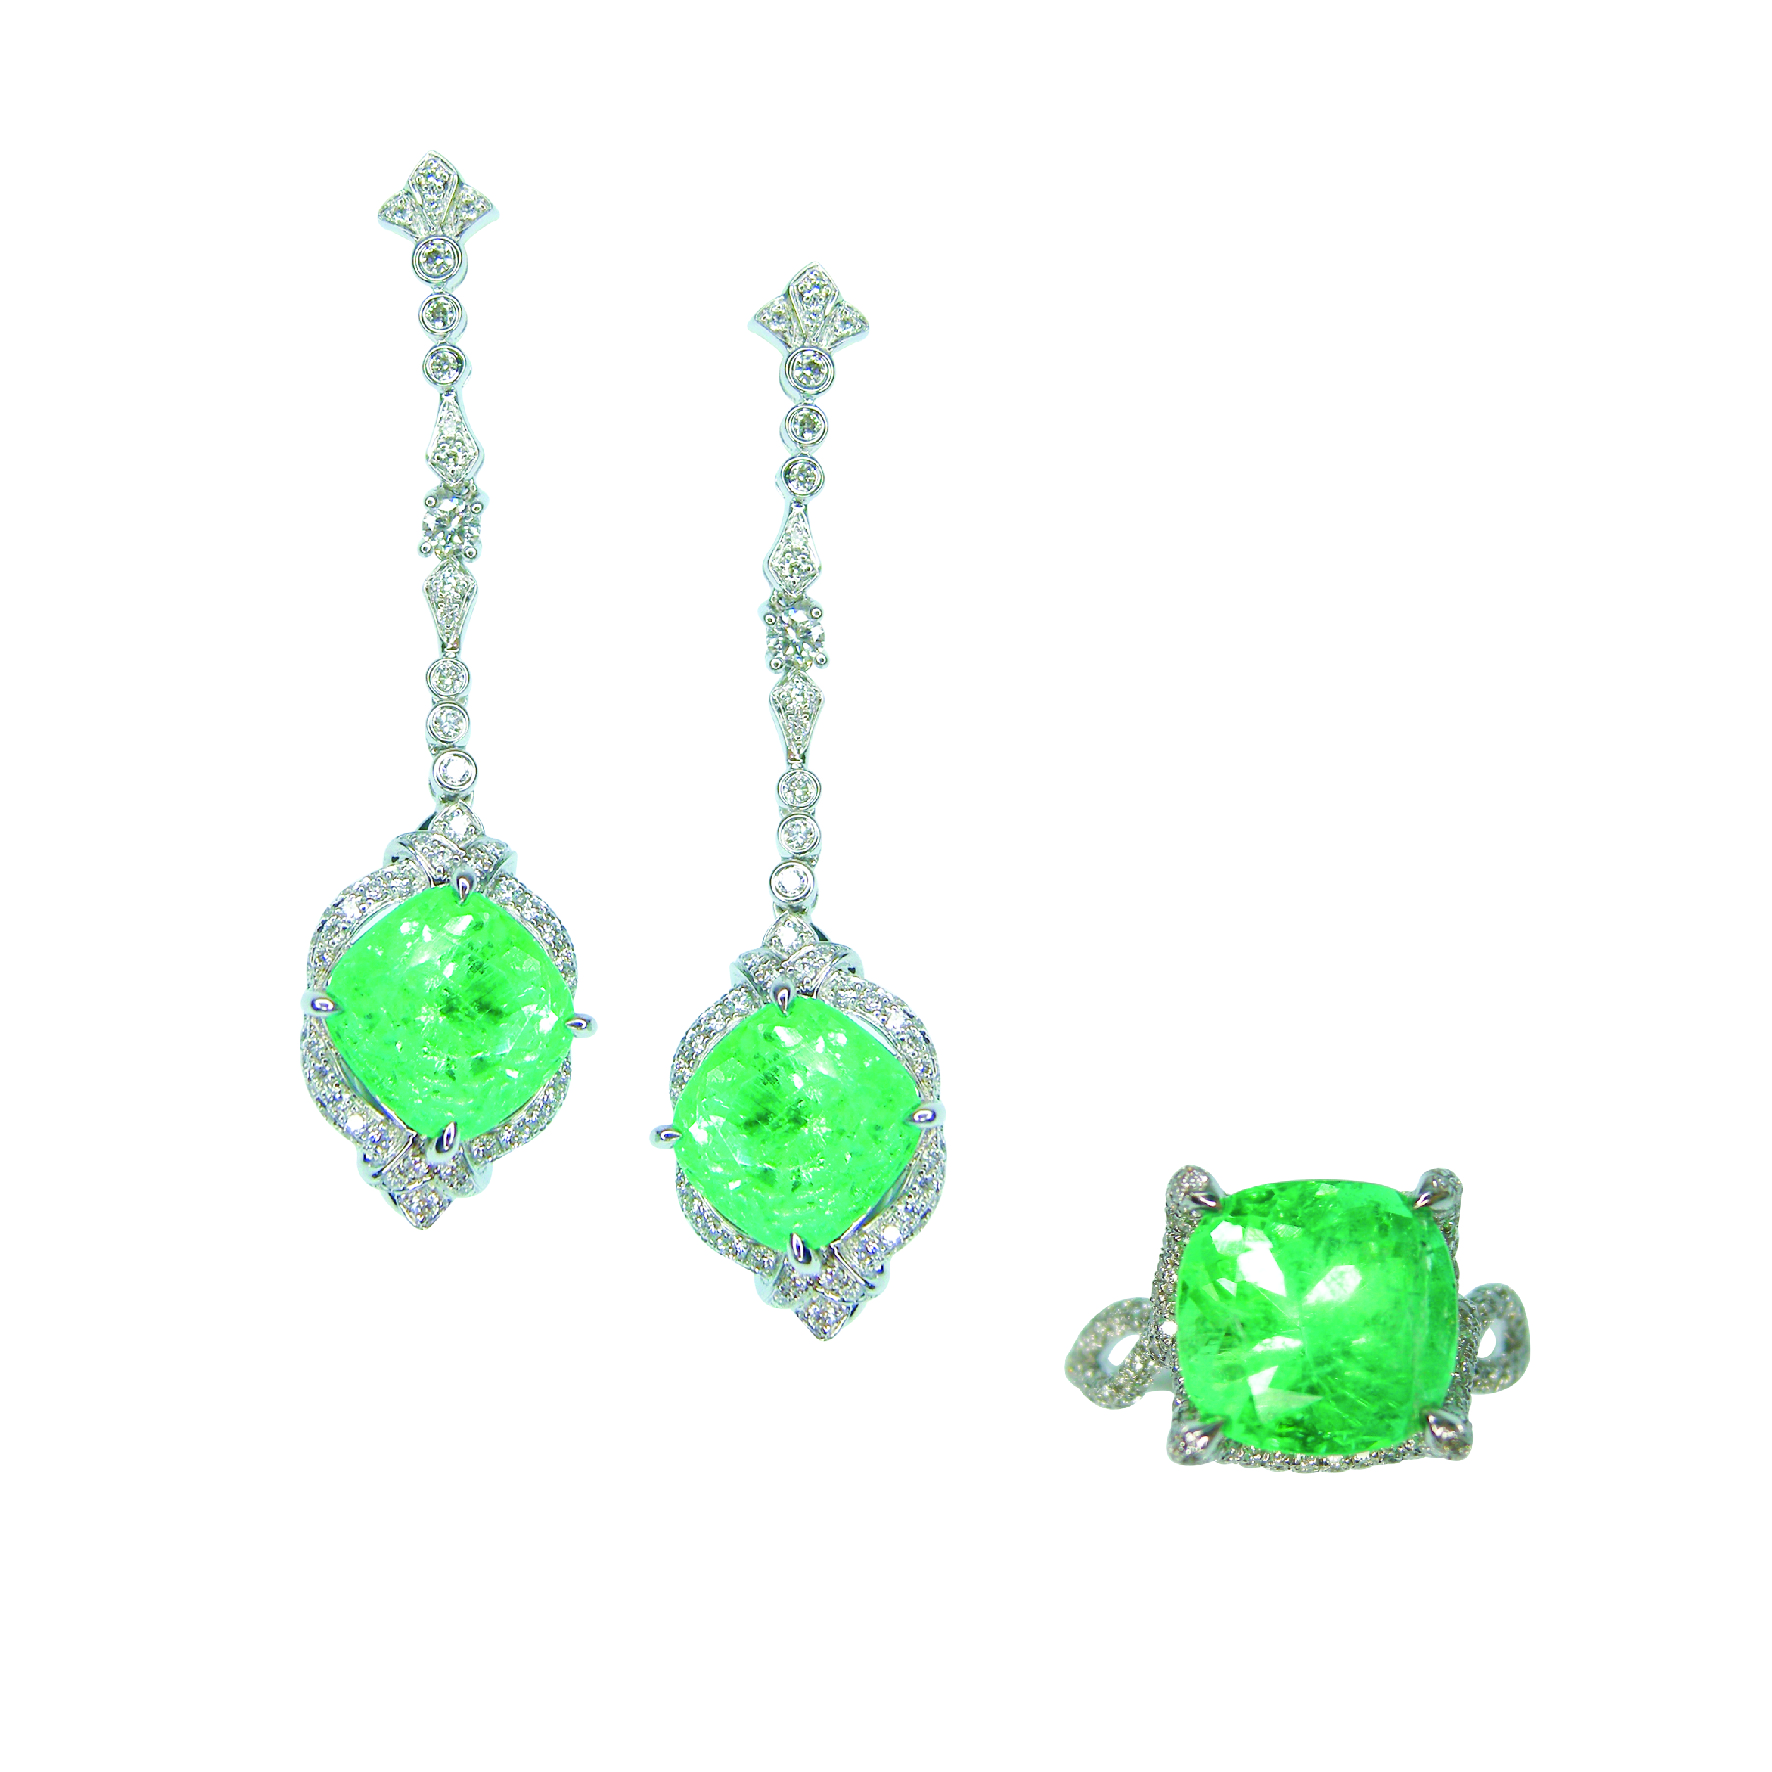 COLOMBIAN MINT EMERALD AND DIAMOND EARRINGS AND RING BESPOKE FINE JEWELLERY BY SHAHINA HATTA HONG KONG